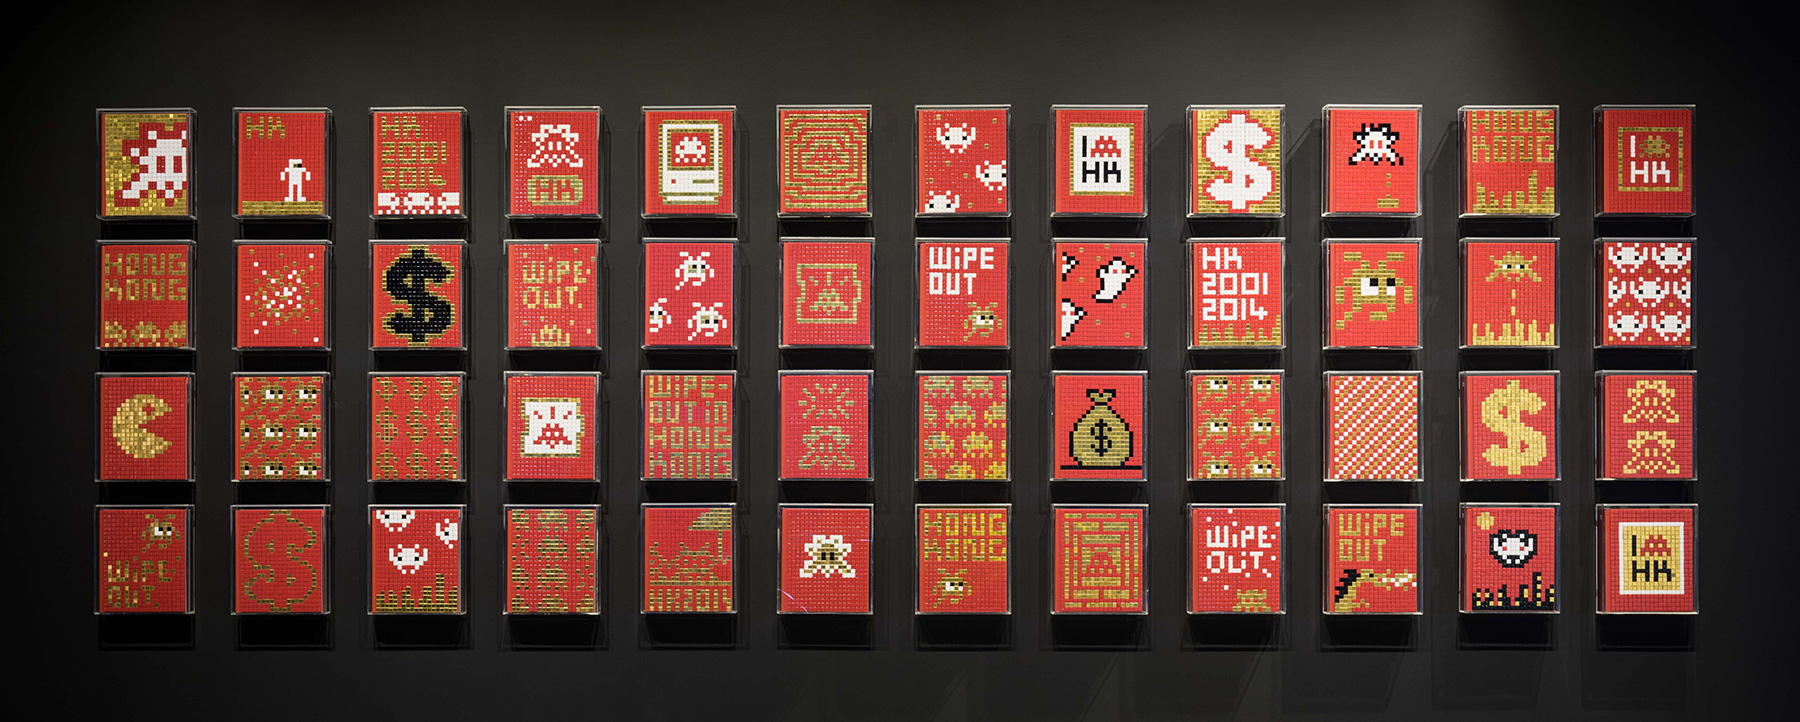 invader-wipe-out-an-explosition-of-invader-in-hong-kong-hoca-foundation-PMQ-alias-street-art-blog-stickers_guide_carte_invasion_livre-23